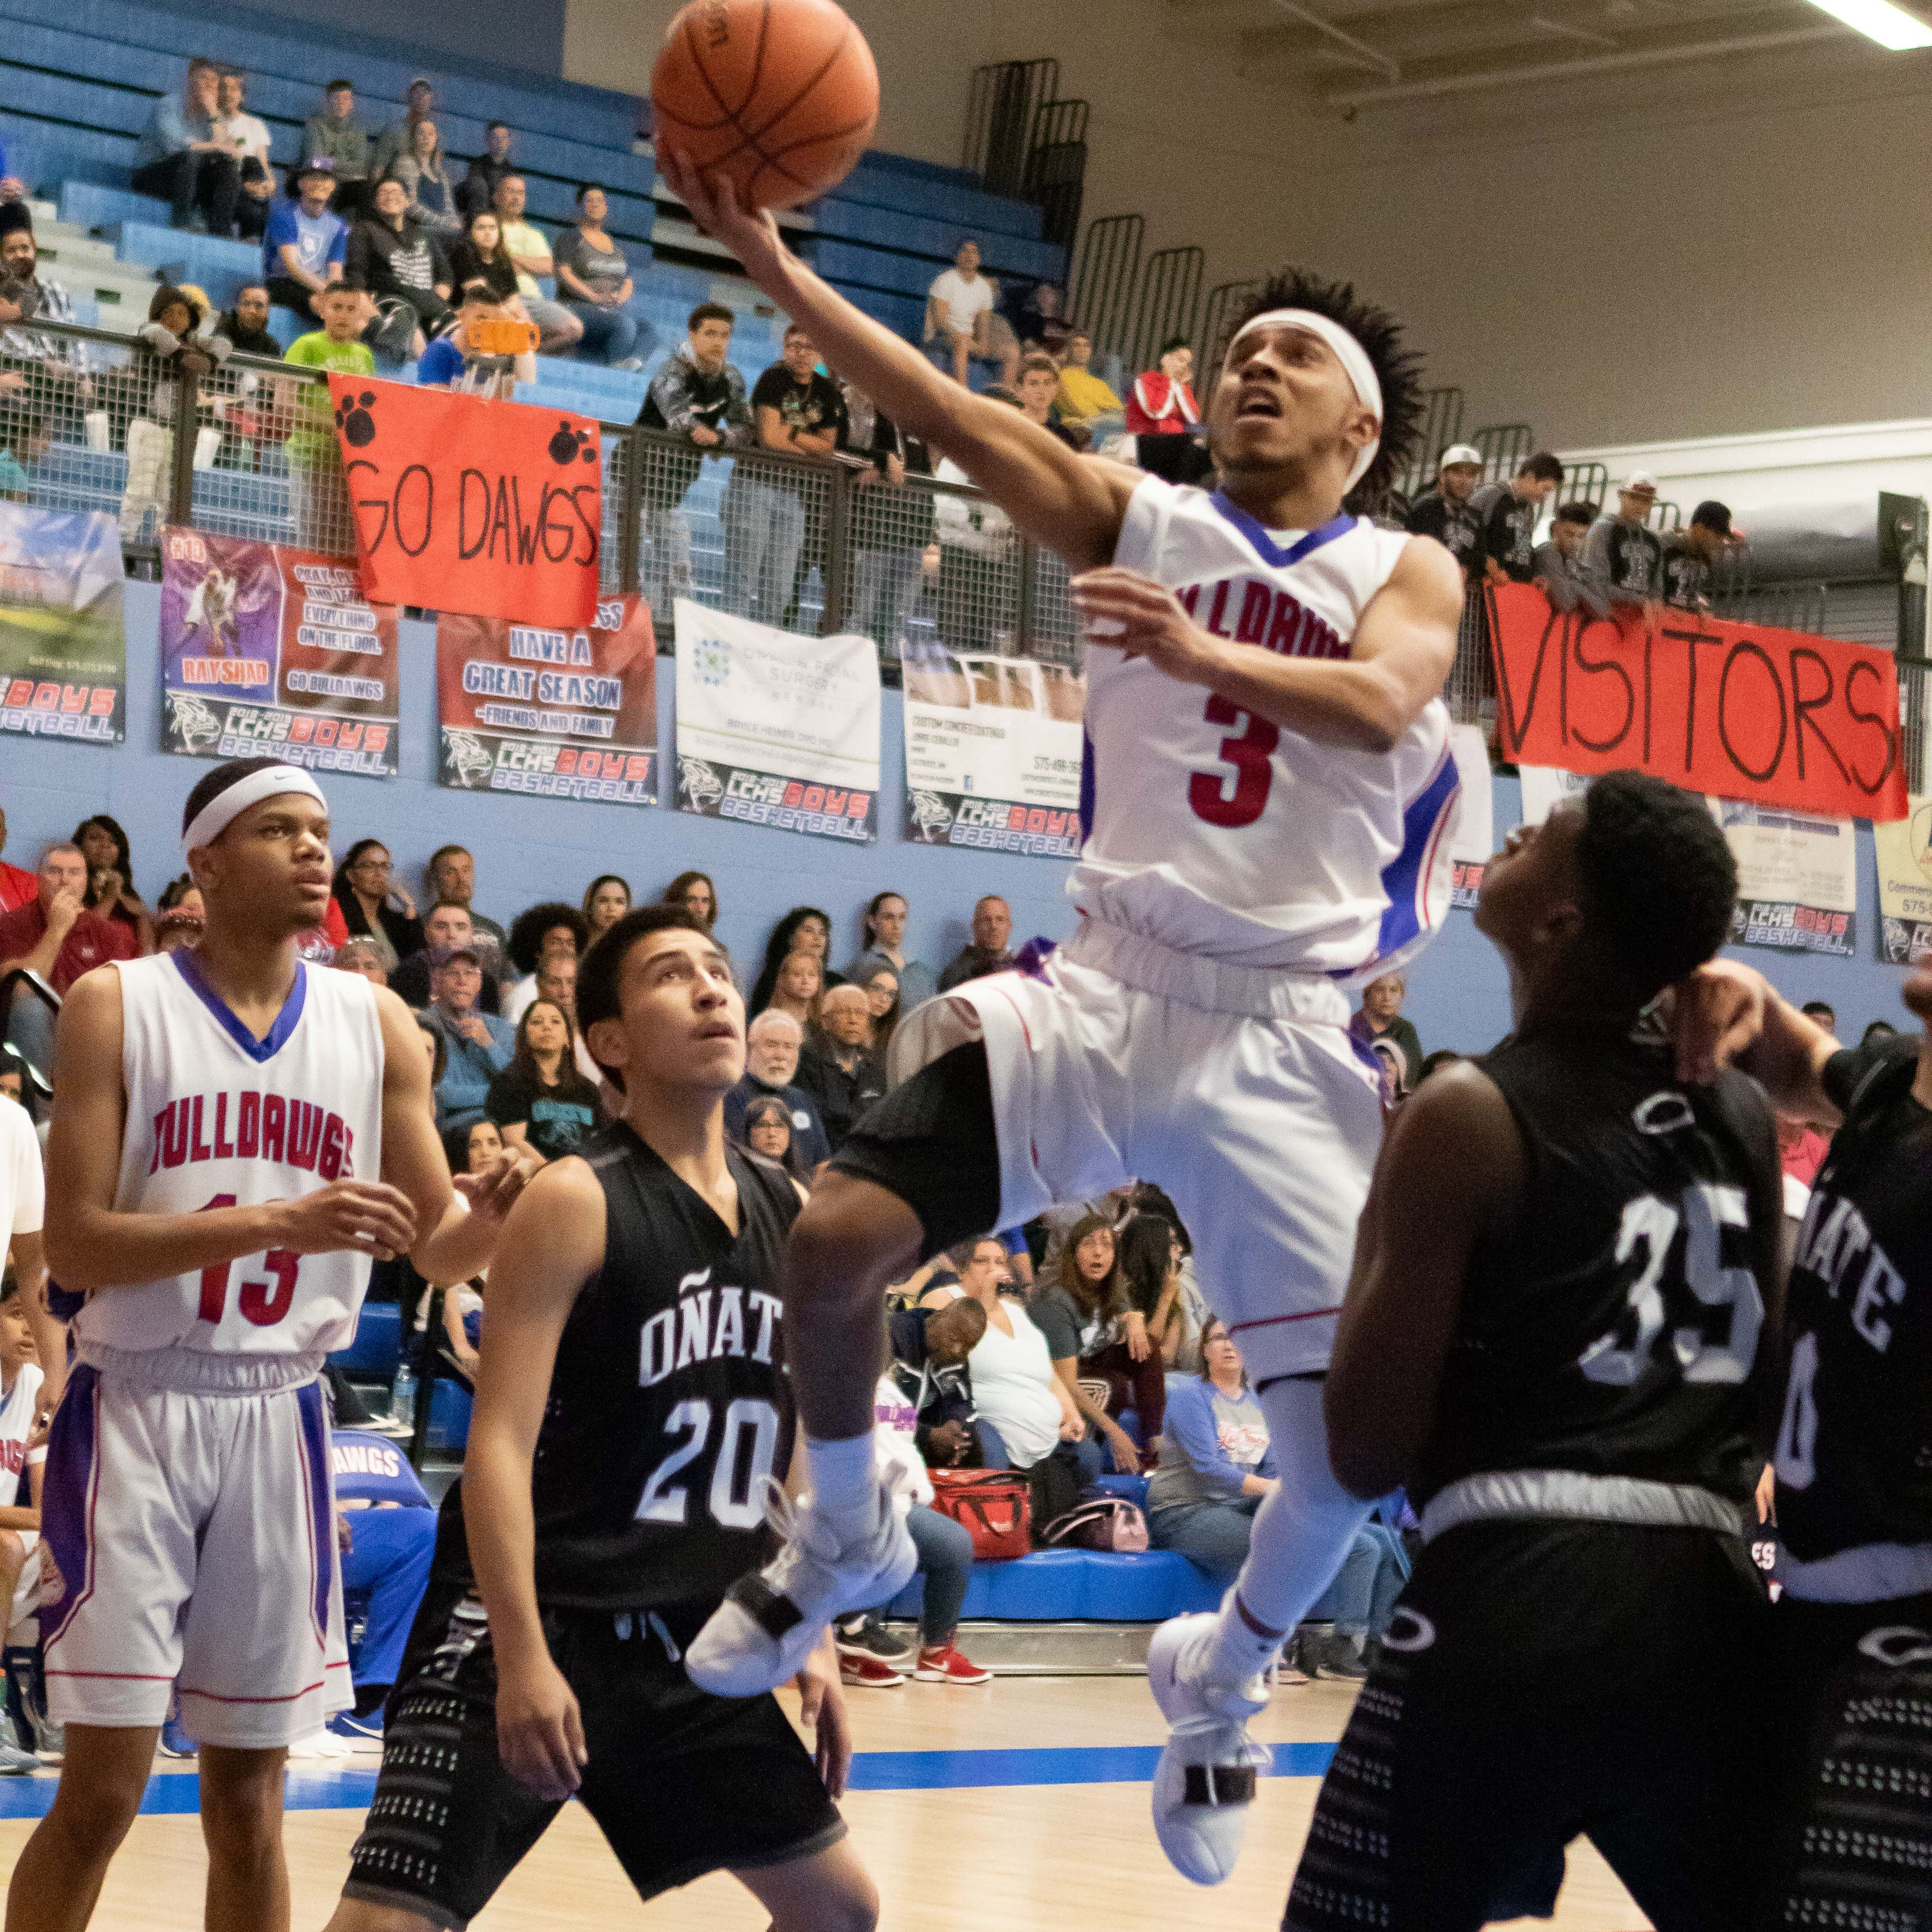 Mayfield girls, Las Cruces boys wrap up district titles